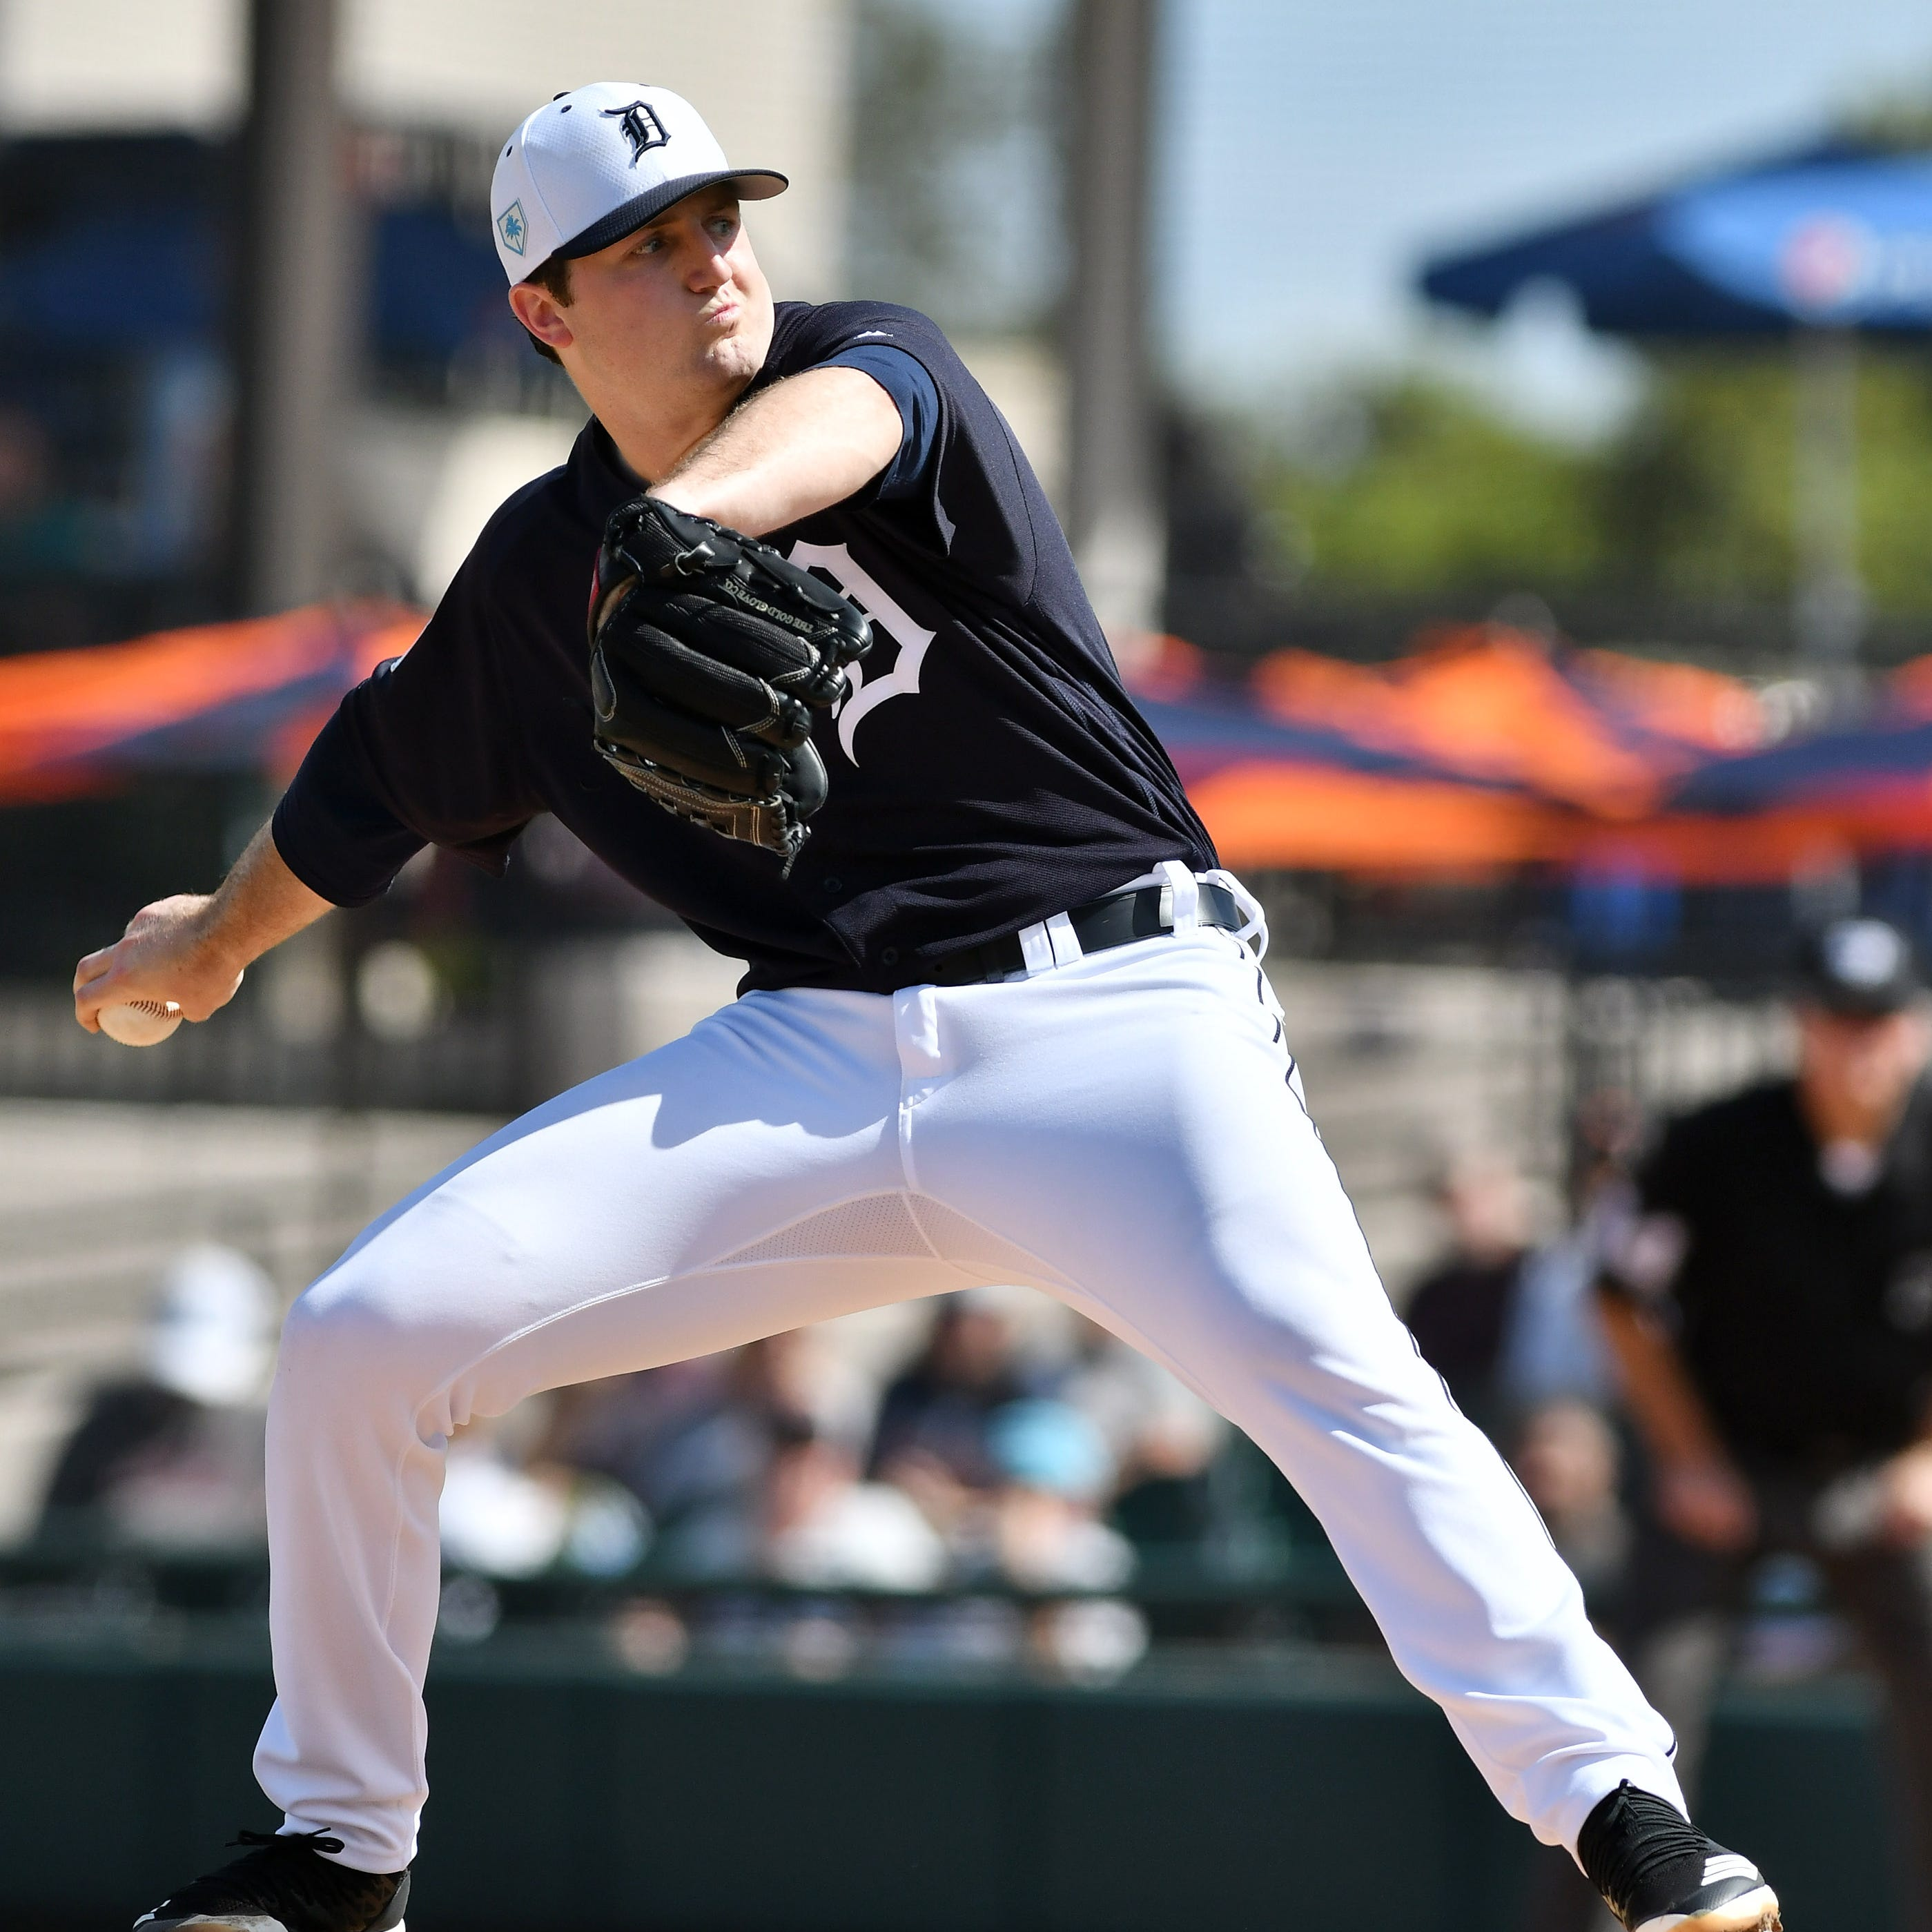 Tigers top pick Casey Mize ends his first camp with a flourish